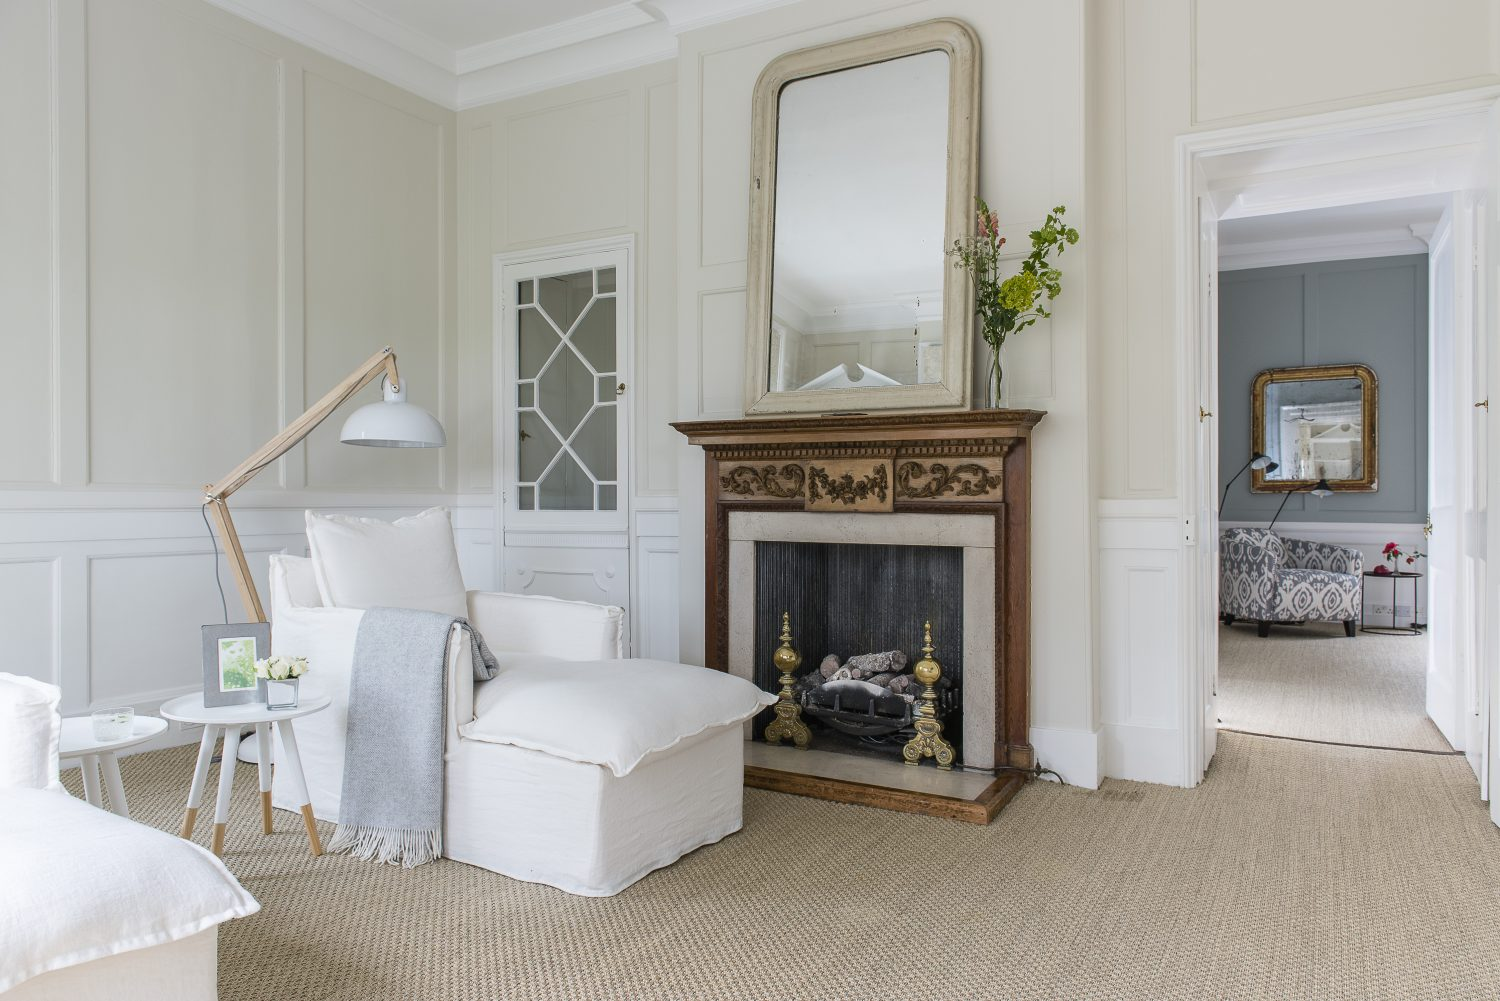 The first floor is largely taken up by the master suite. Each room has its own big and beautiful fireplace, often decorated with vintage mirrors, suitably cracked and worn in patches. The Isaac daybed is from sofa.com